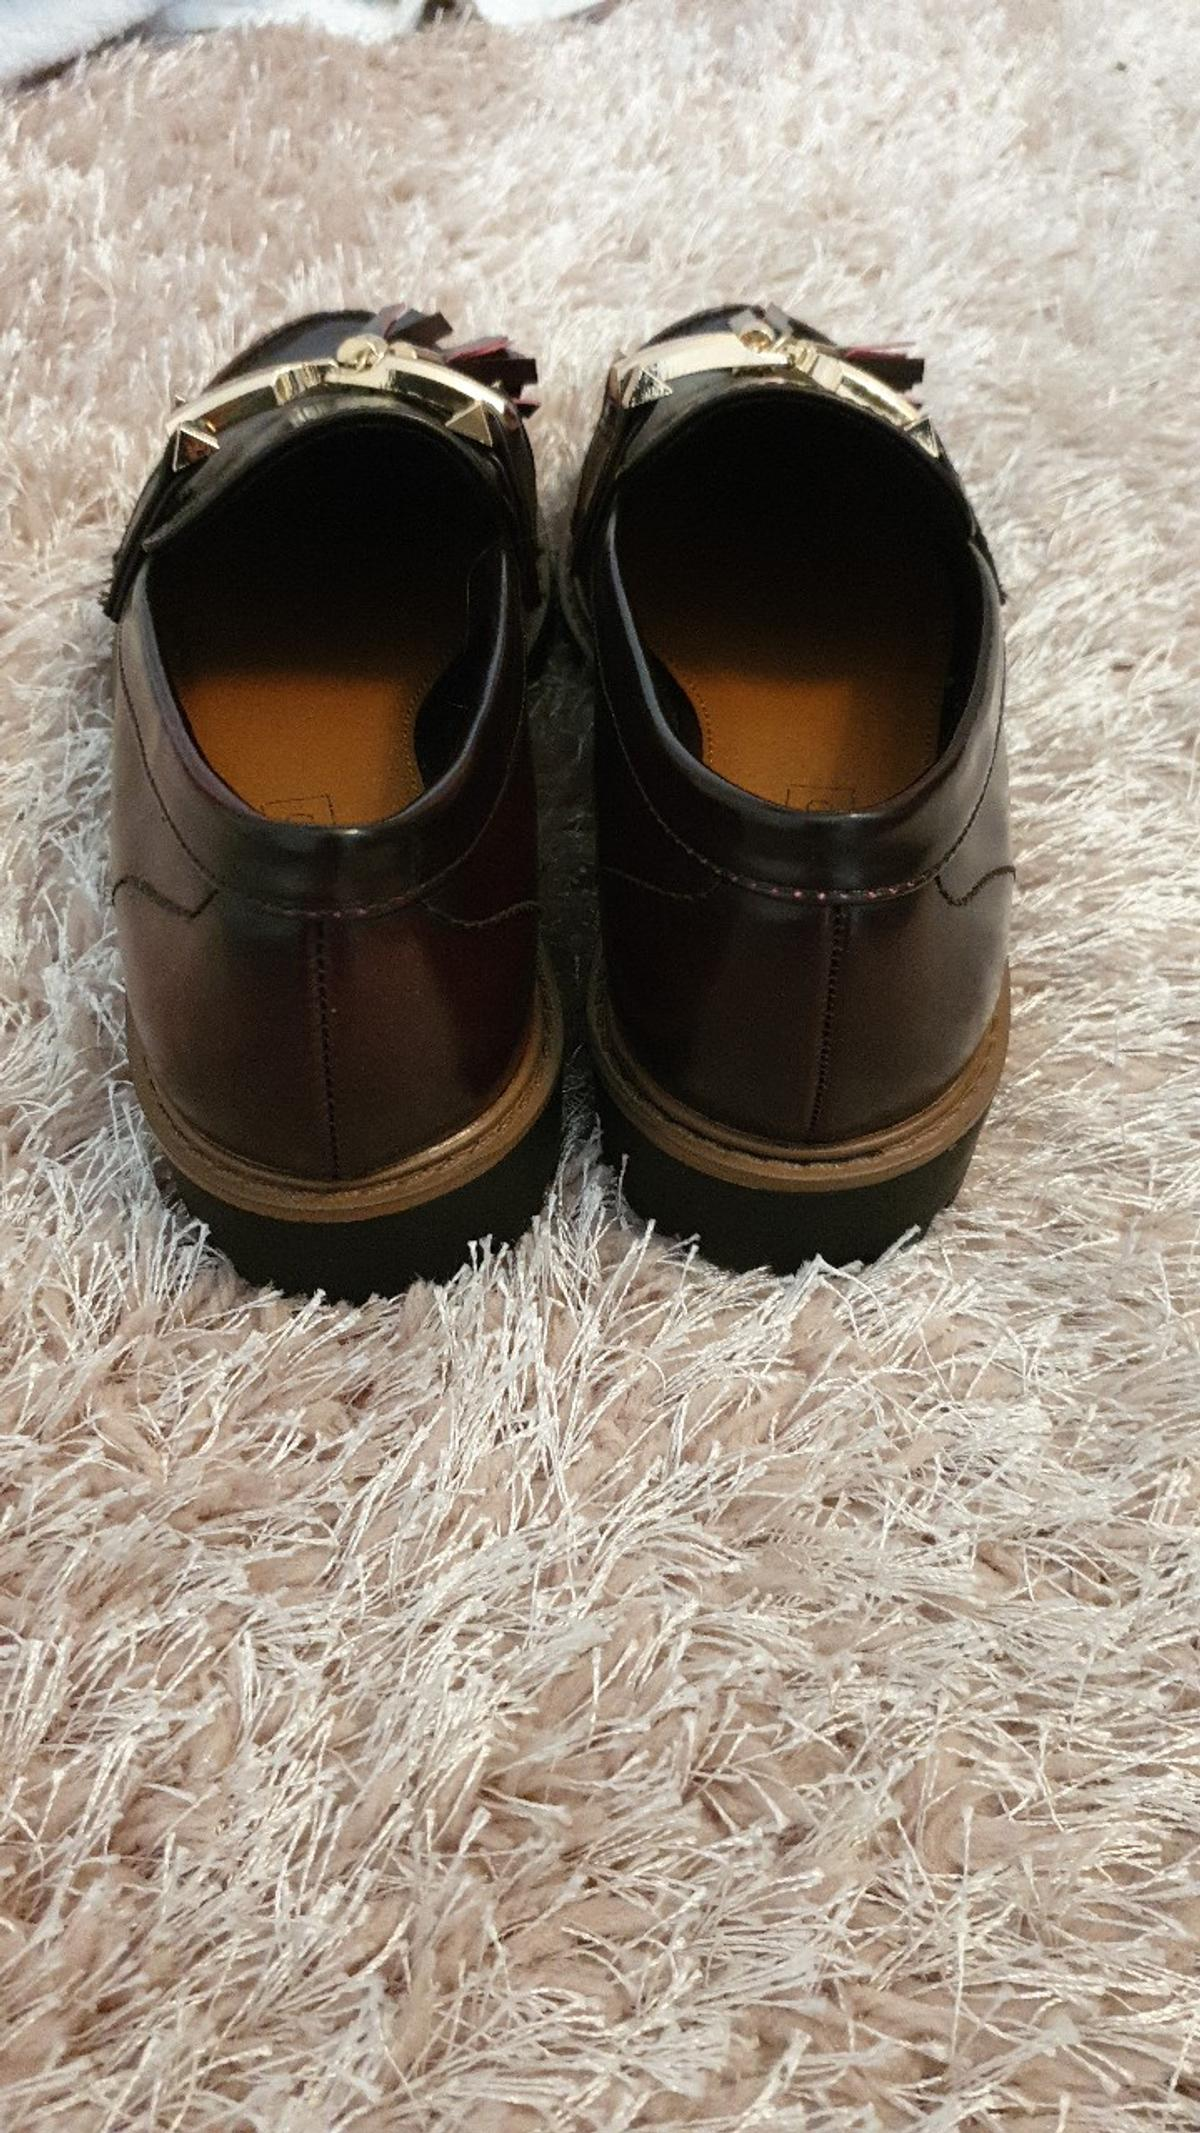 excellent condition wore for half hour for a job interview size 4